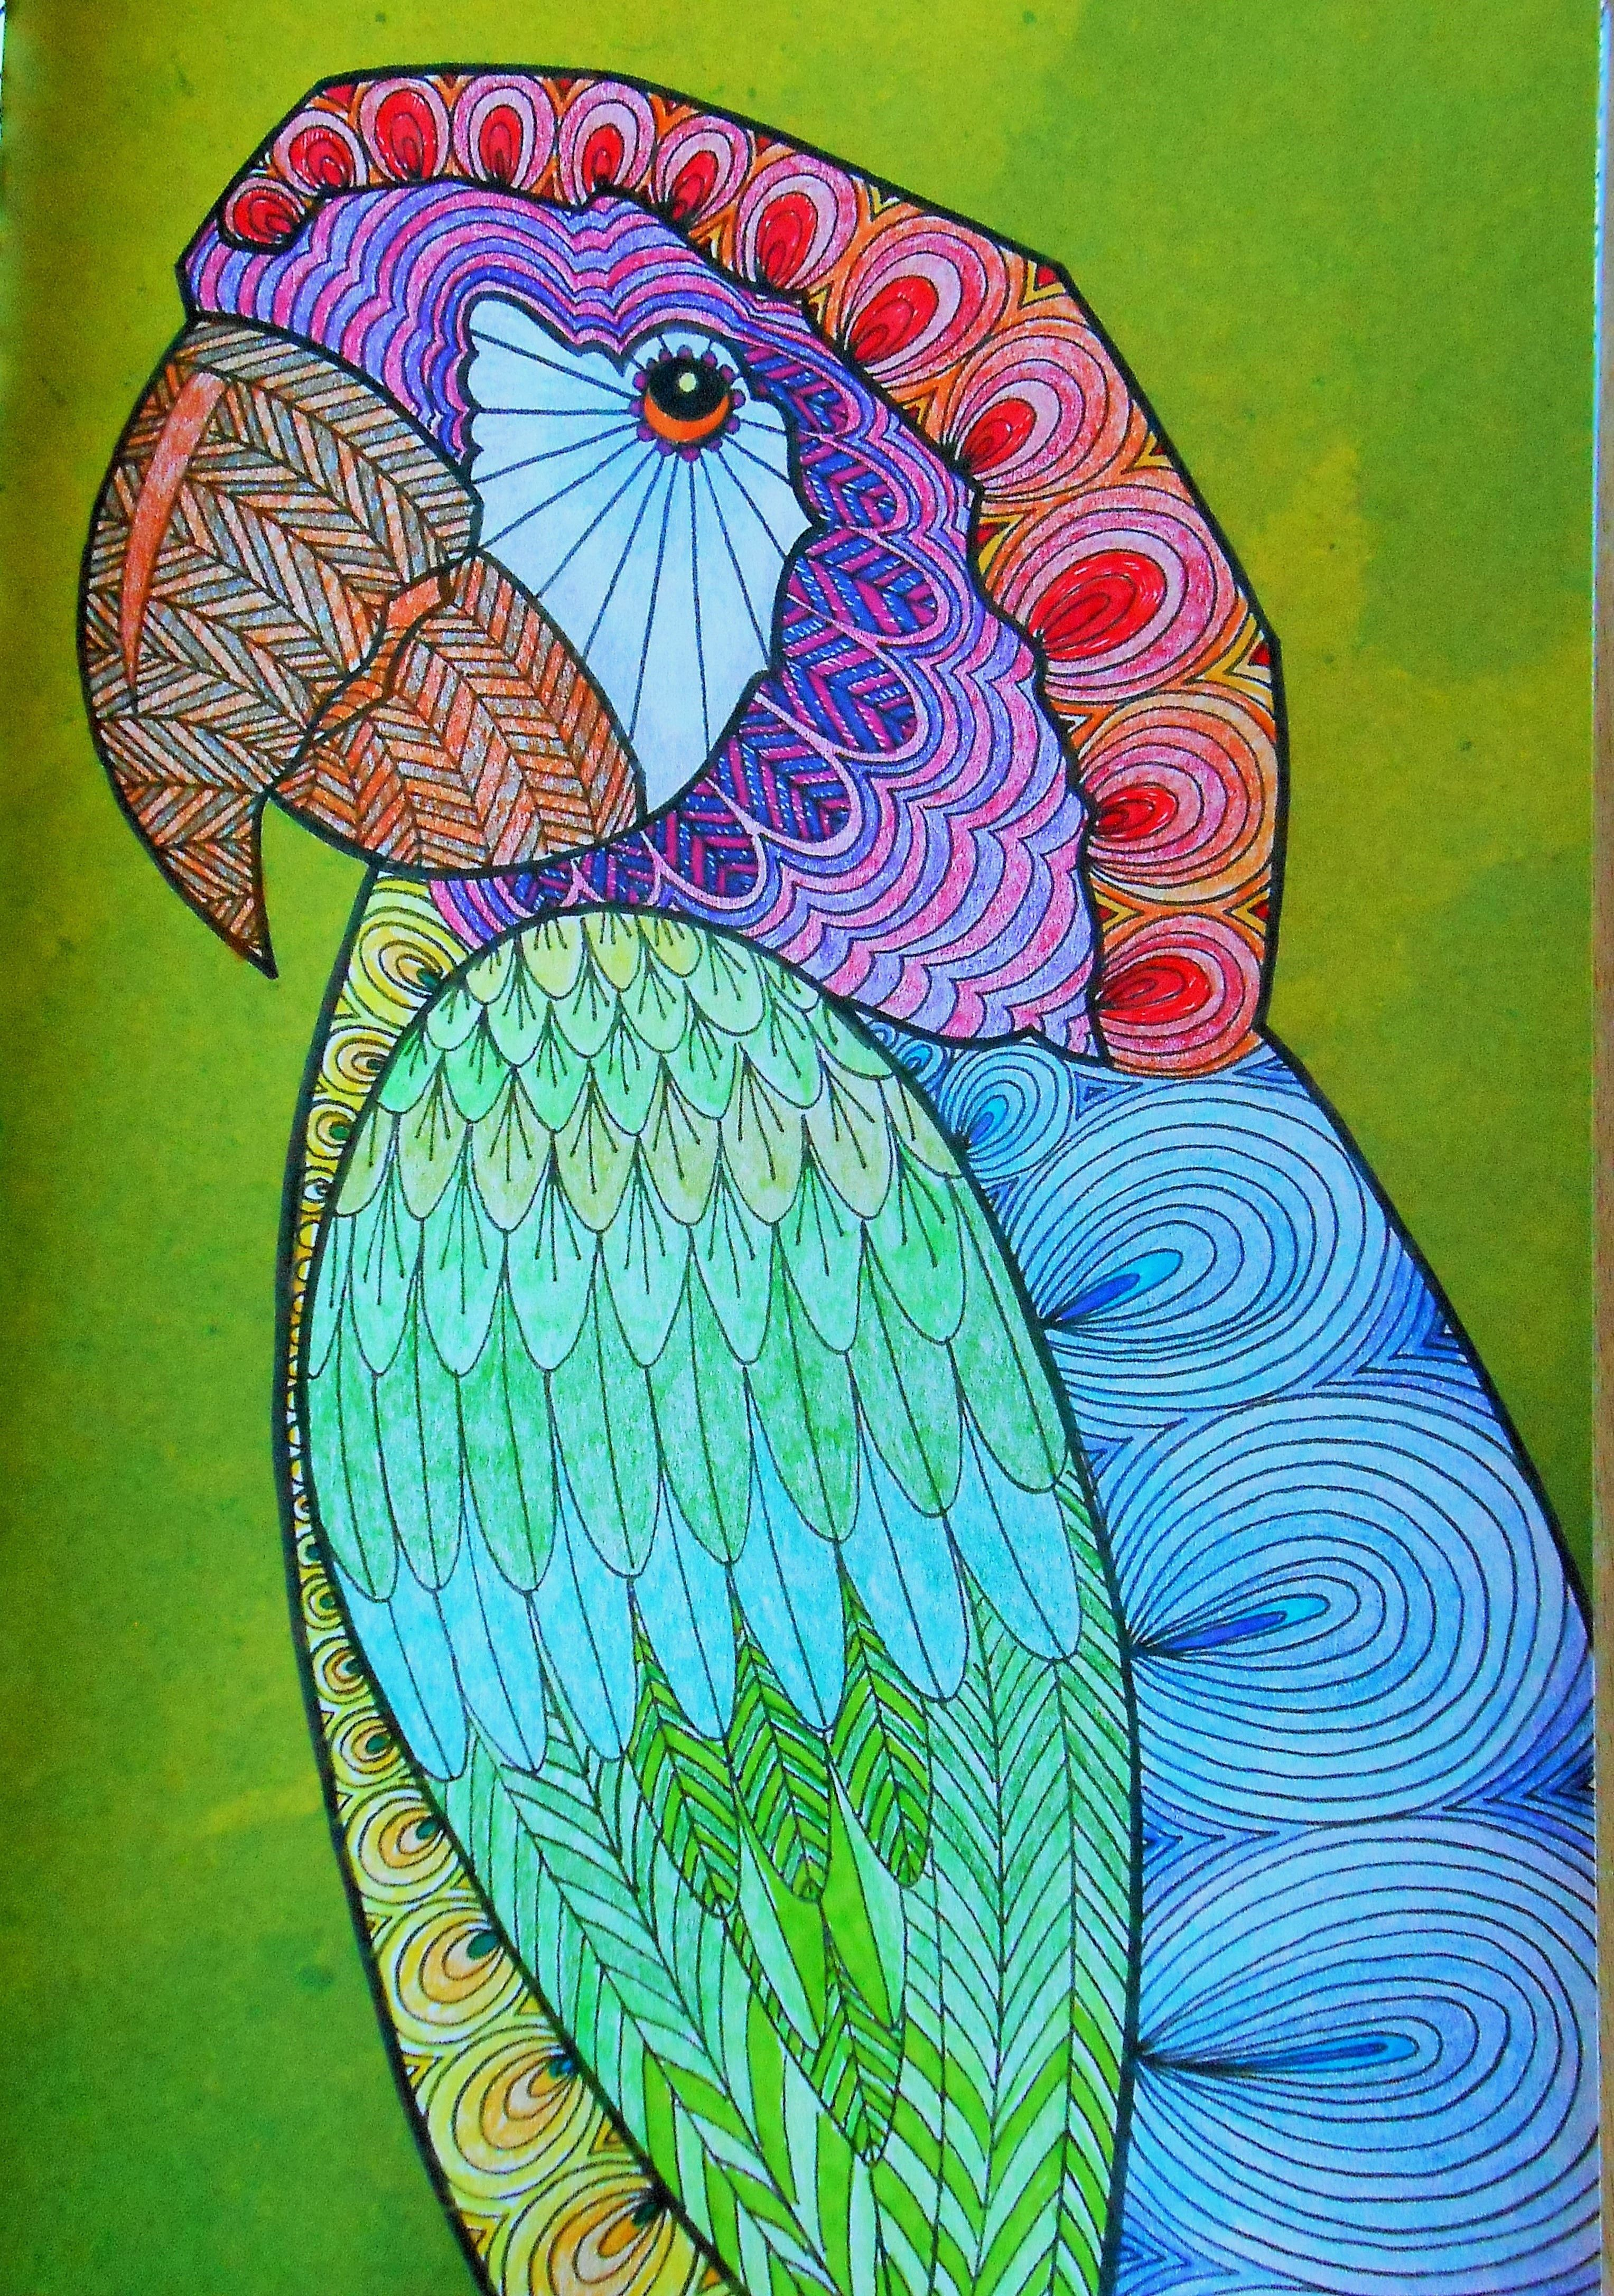 Rainbow Parrot From Art Therapy An Anti Stress Colouring Book Colouring Art Therapy Art Therapy Coloring Book Color Pencil Art